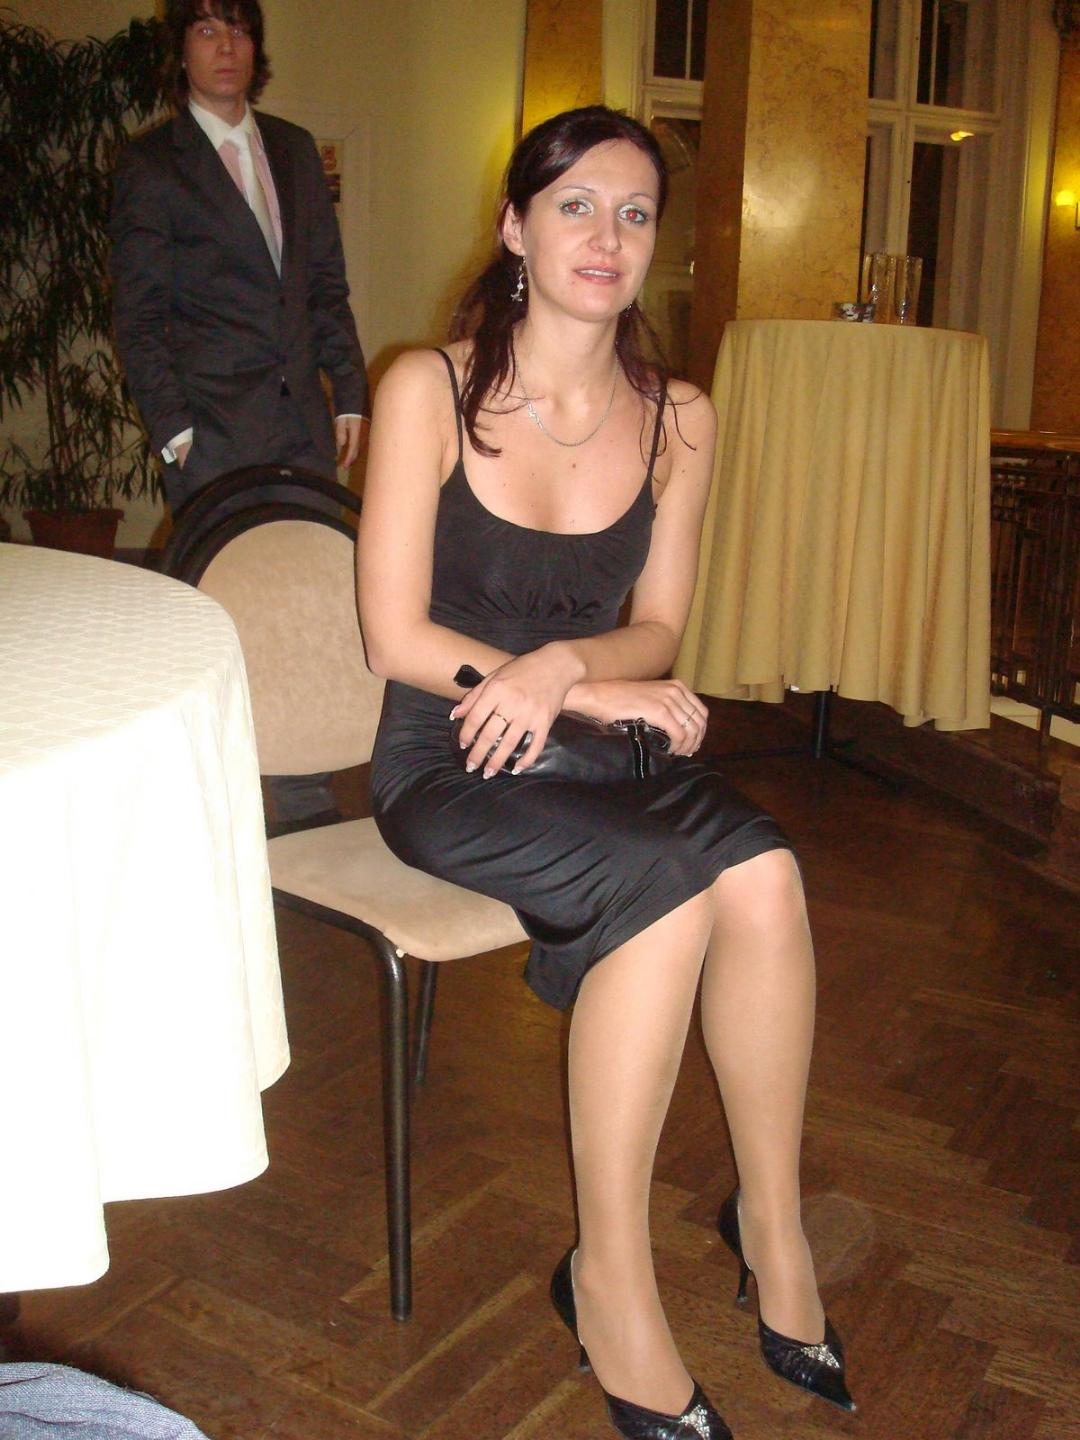 Milf In High Heels Pics